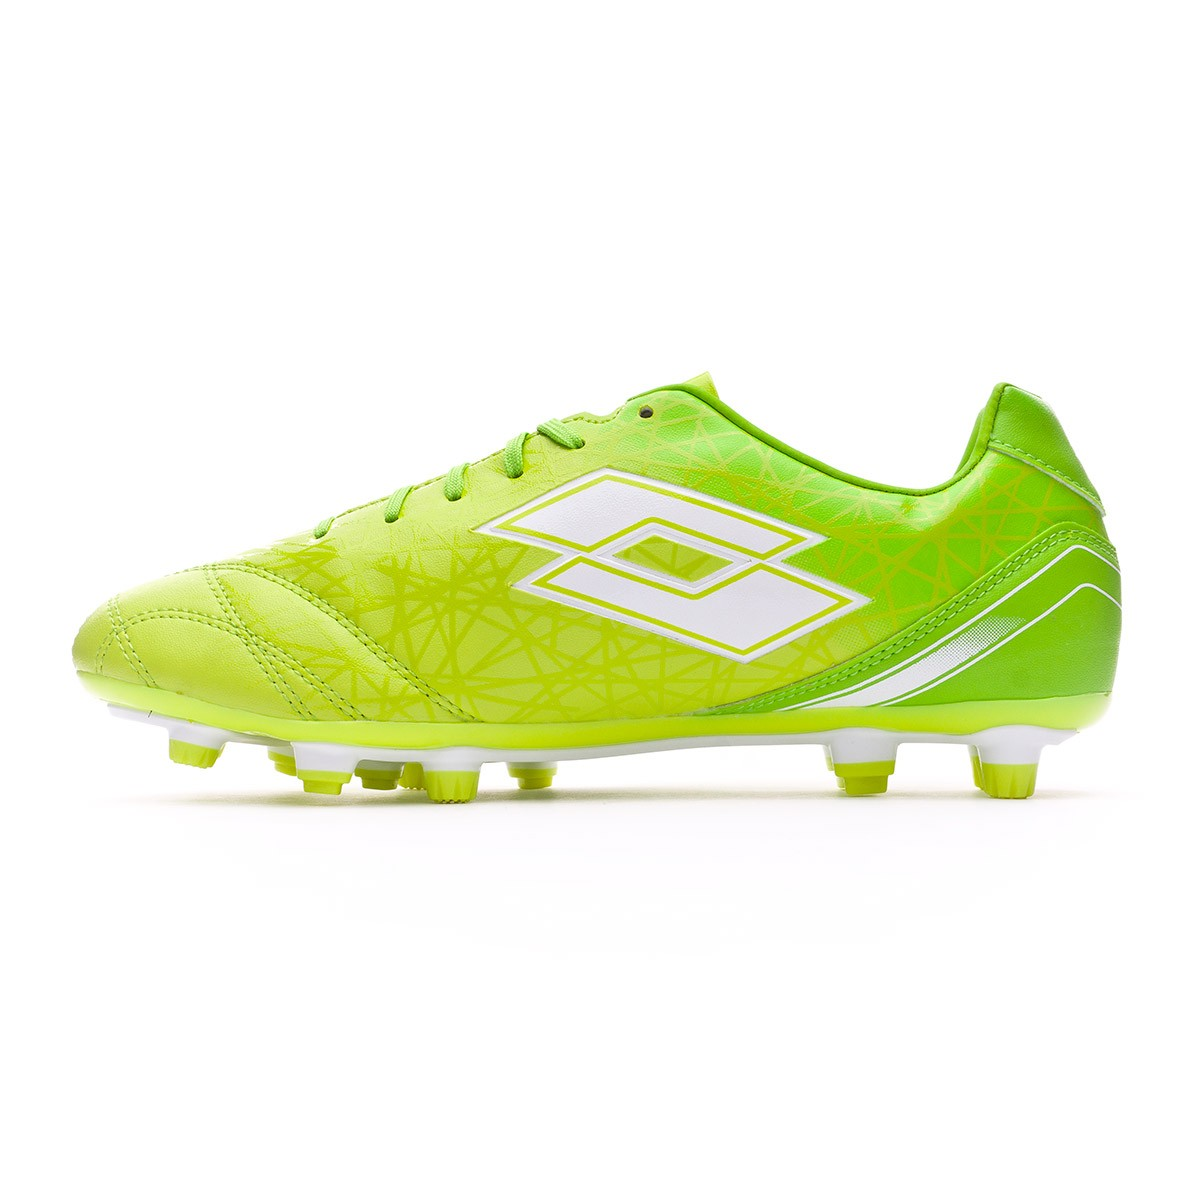 separation shoes ec405 5470d Football Boots Lotto Zhero Gravity 700 X FG Green-White - Football store  Fútbol Emotion